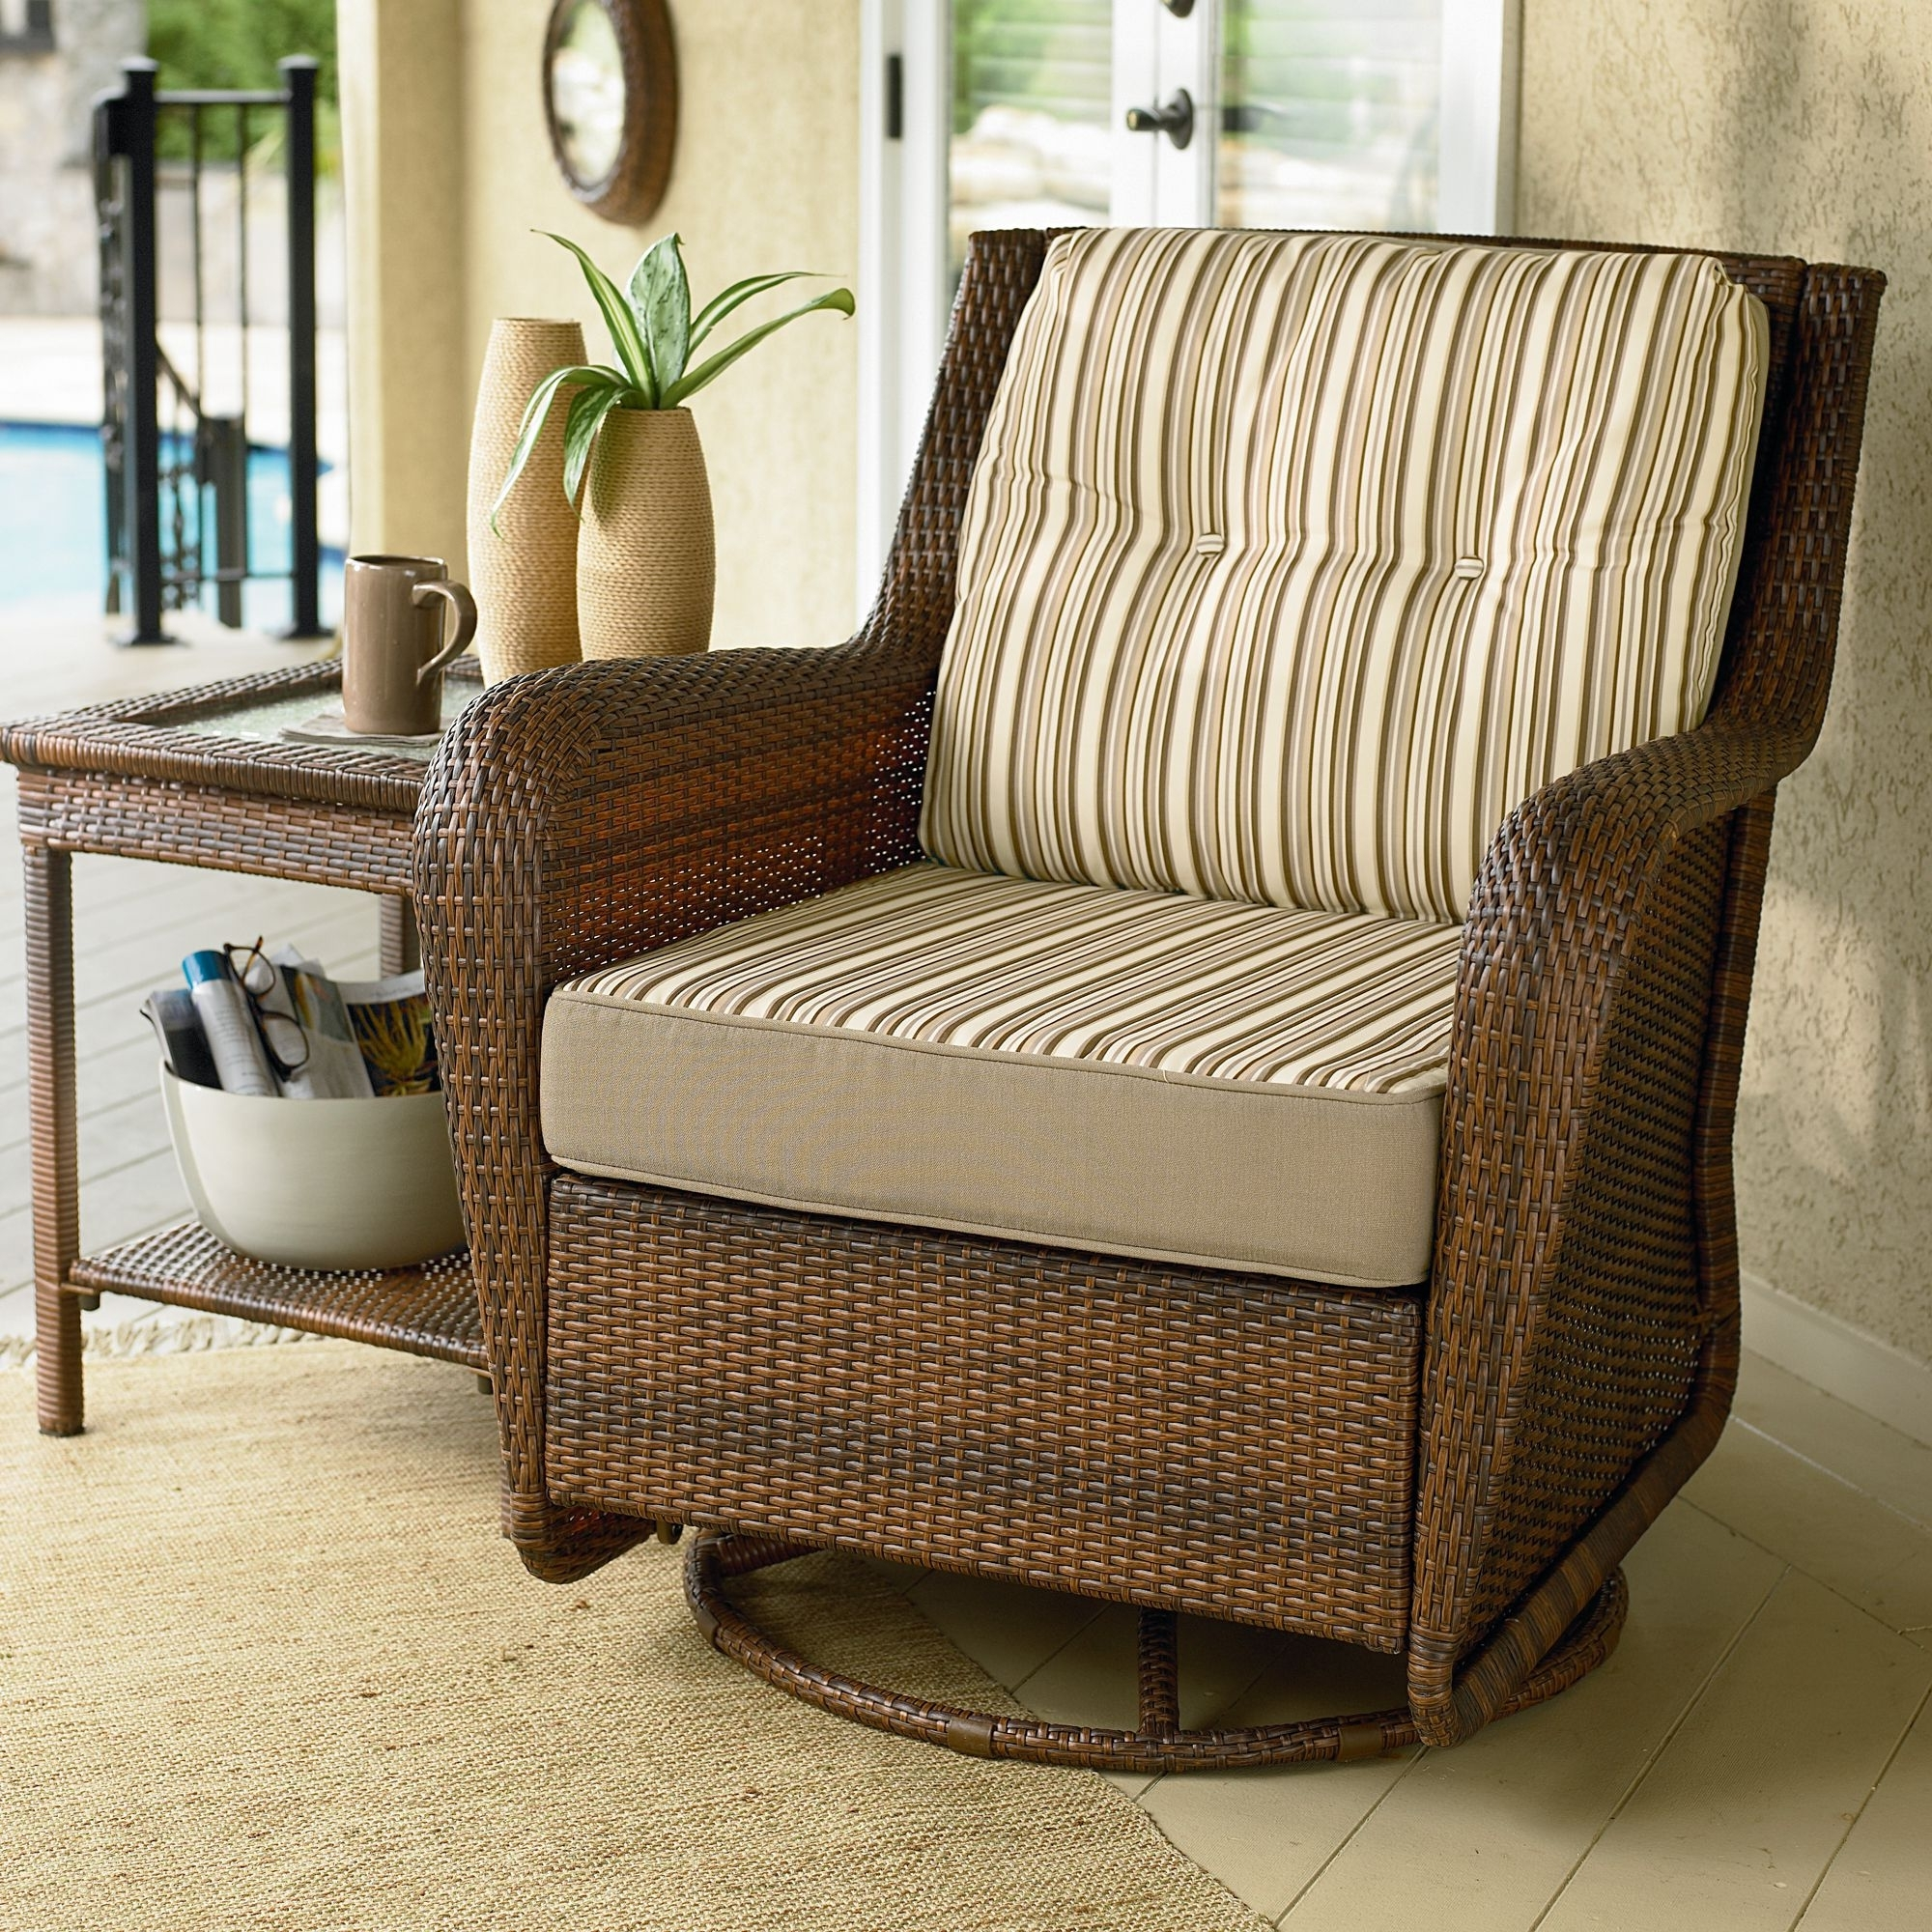 Famous Wicker Rocking Chairs And Ottoman For Ottomans : Recliners Rocking Chair With Ottoman For Sale Rockers And (View 4 of 15)